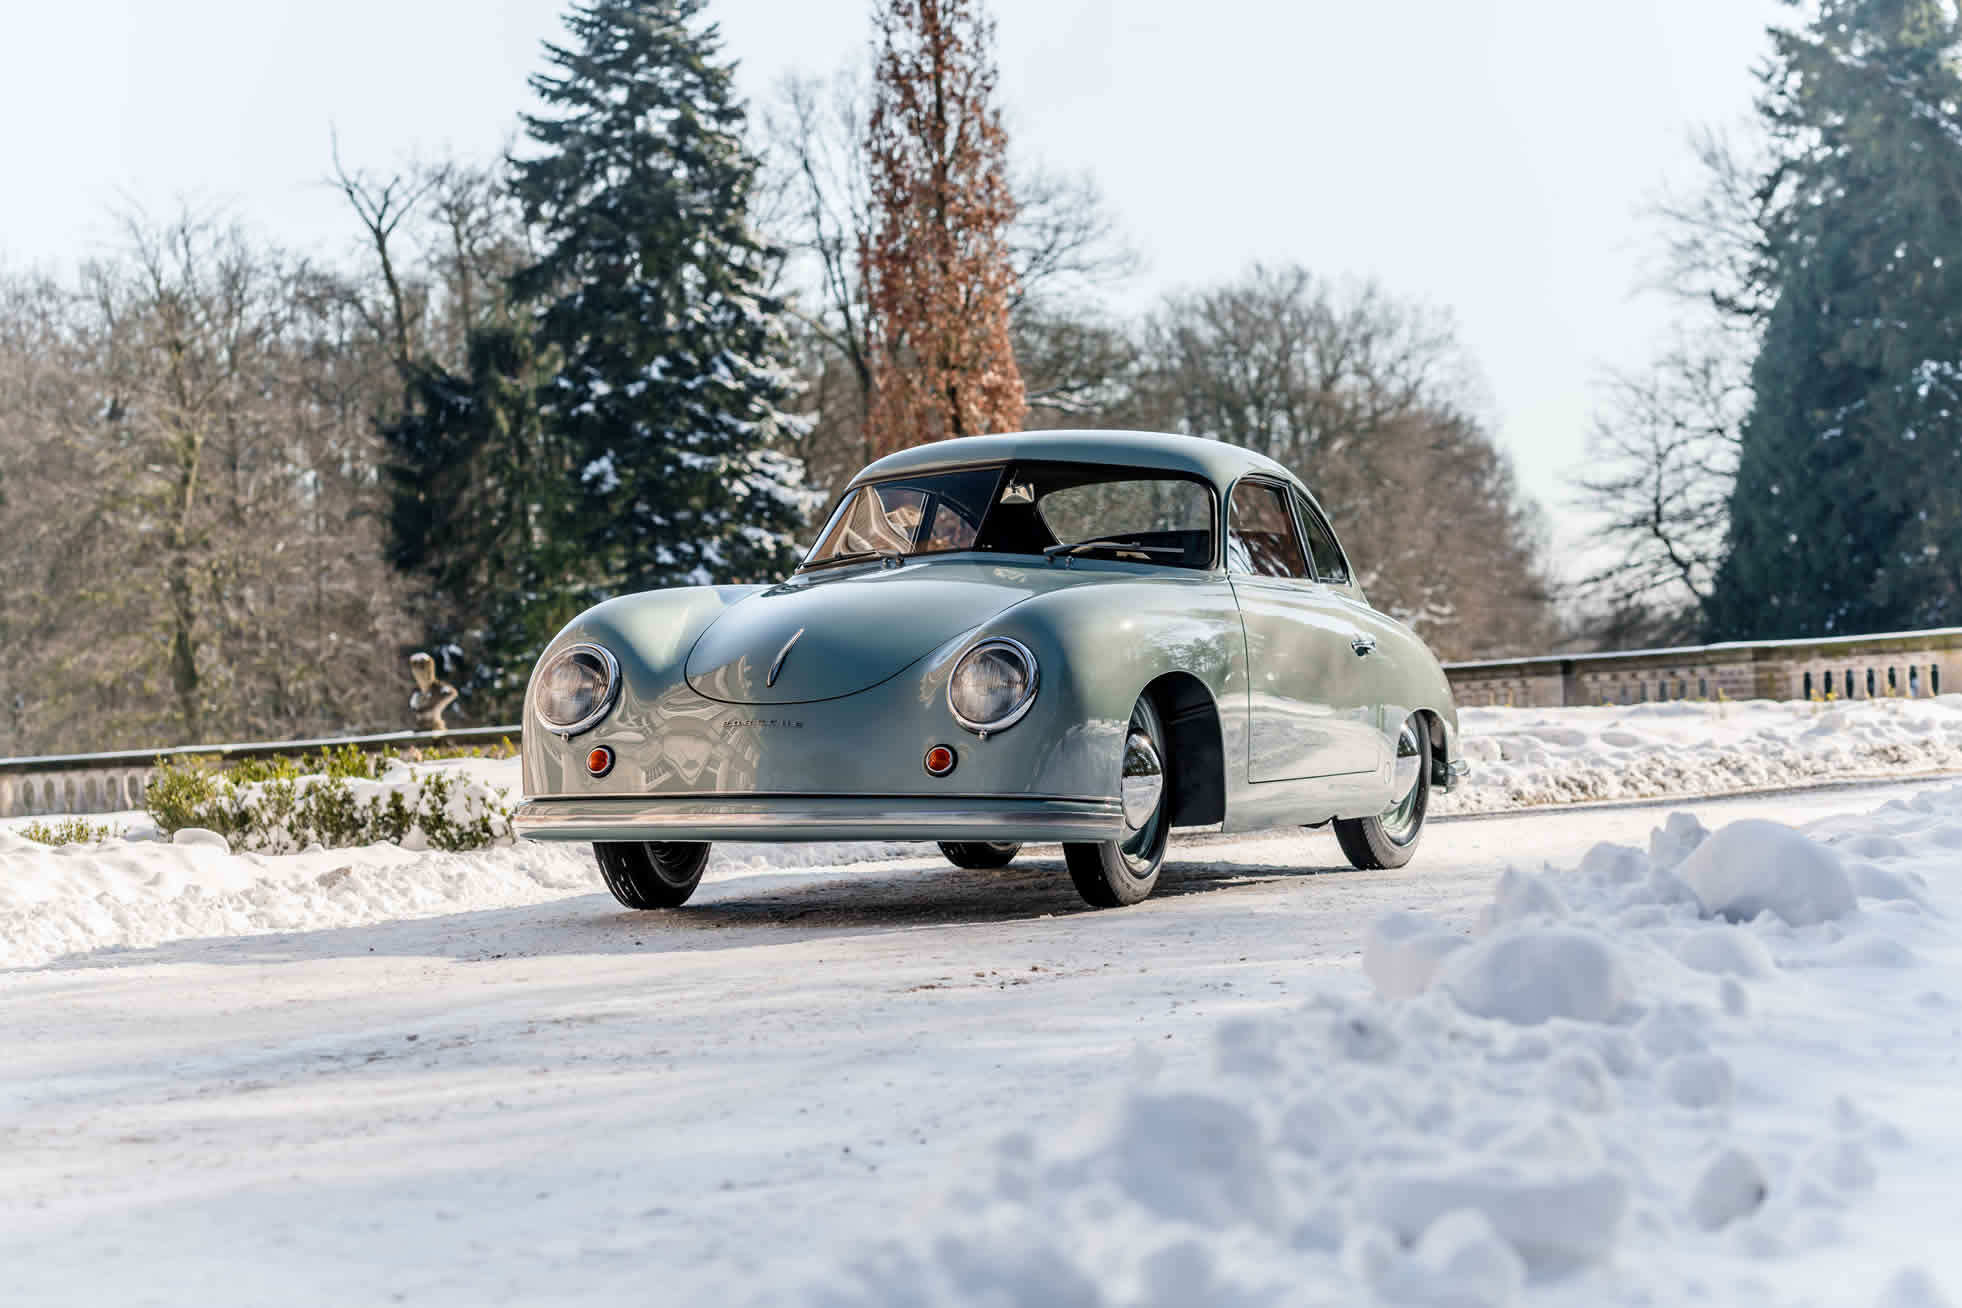 For sale an extremely rare 1951 Porsche 356. Sports Purpose